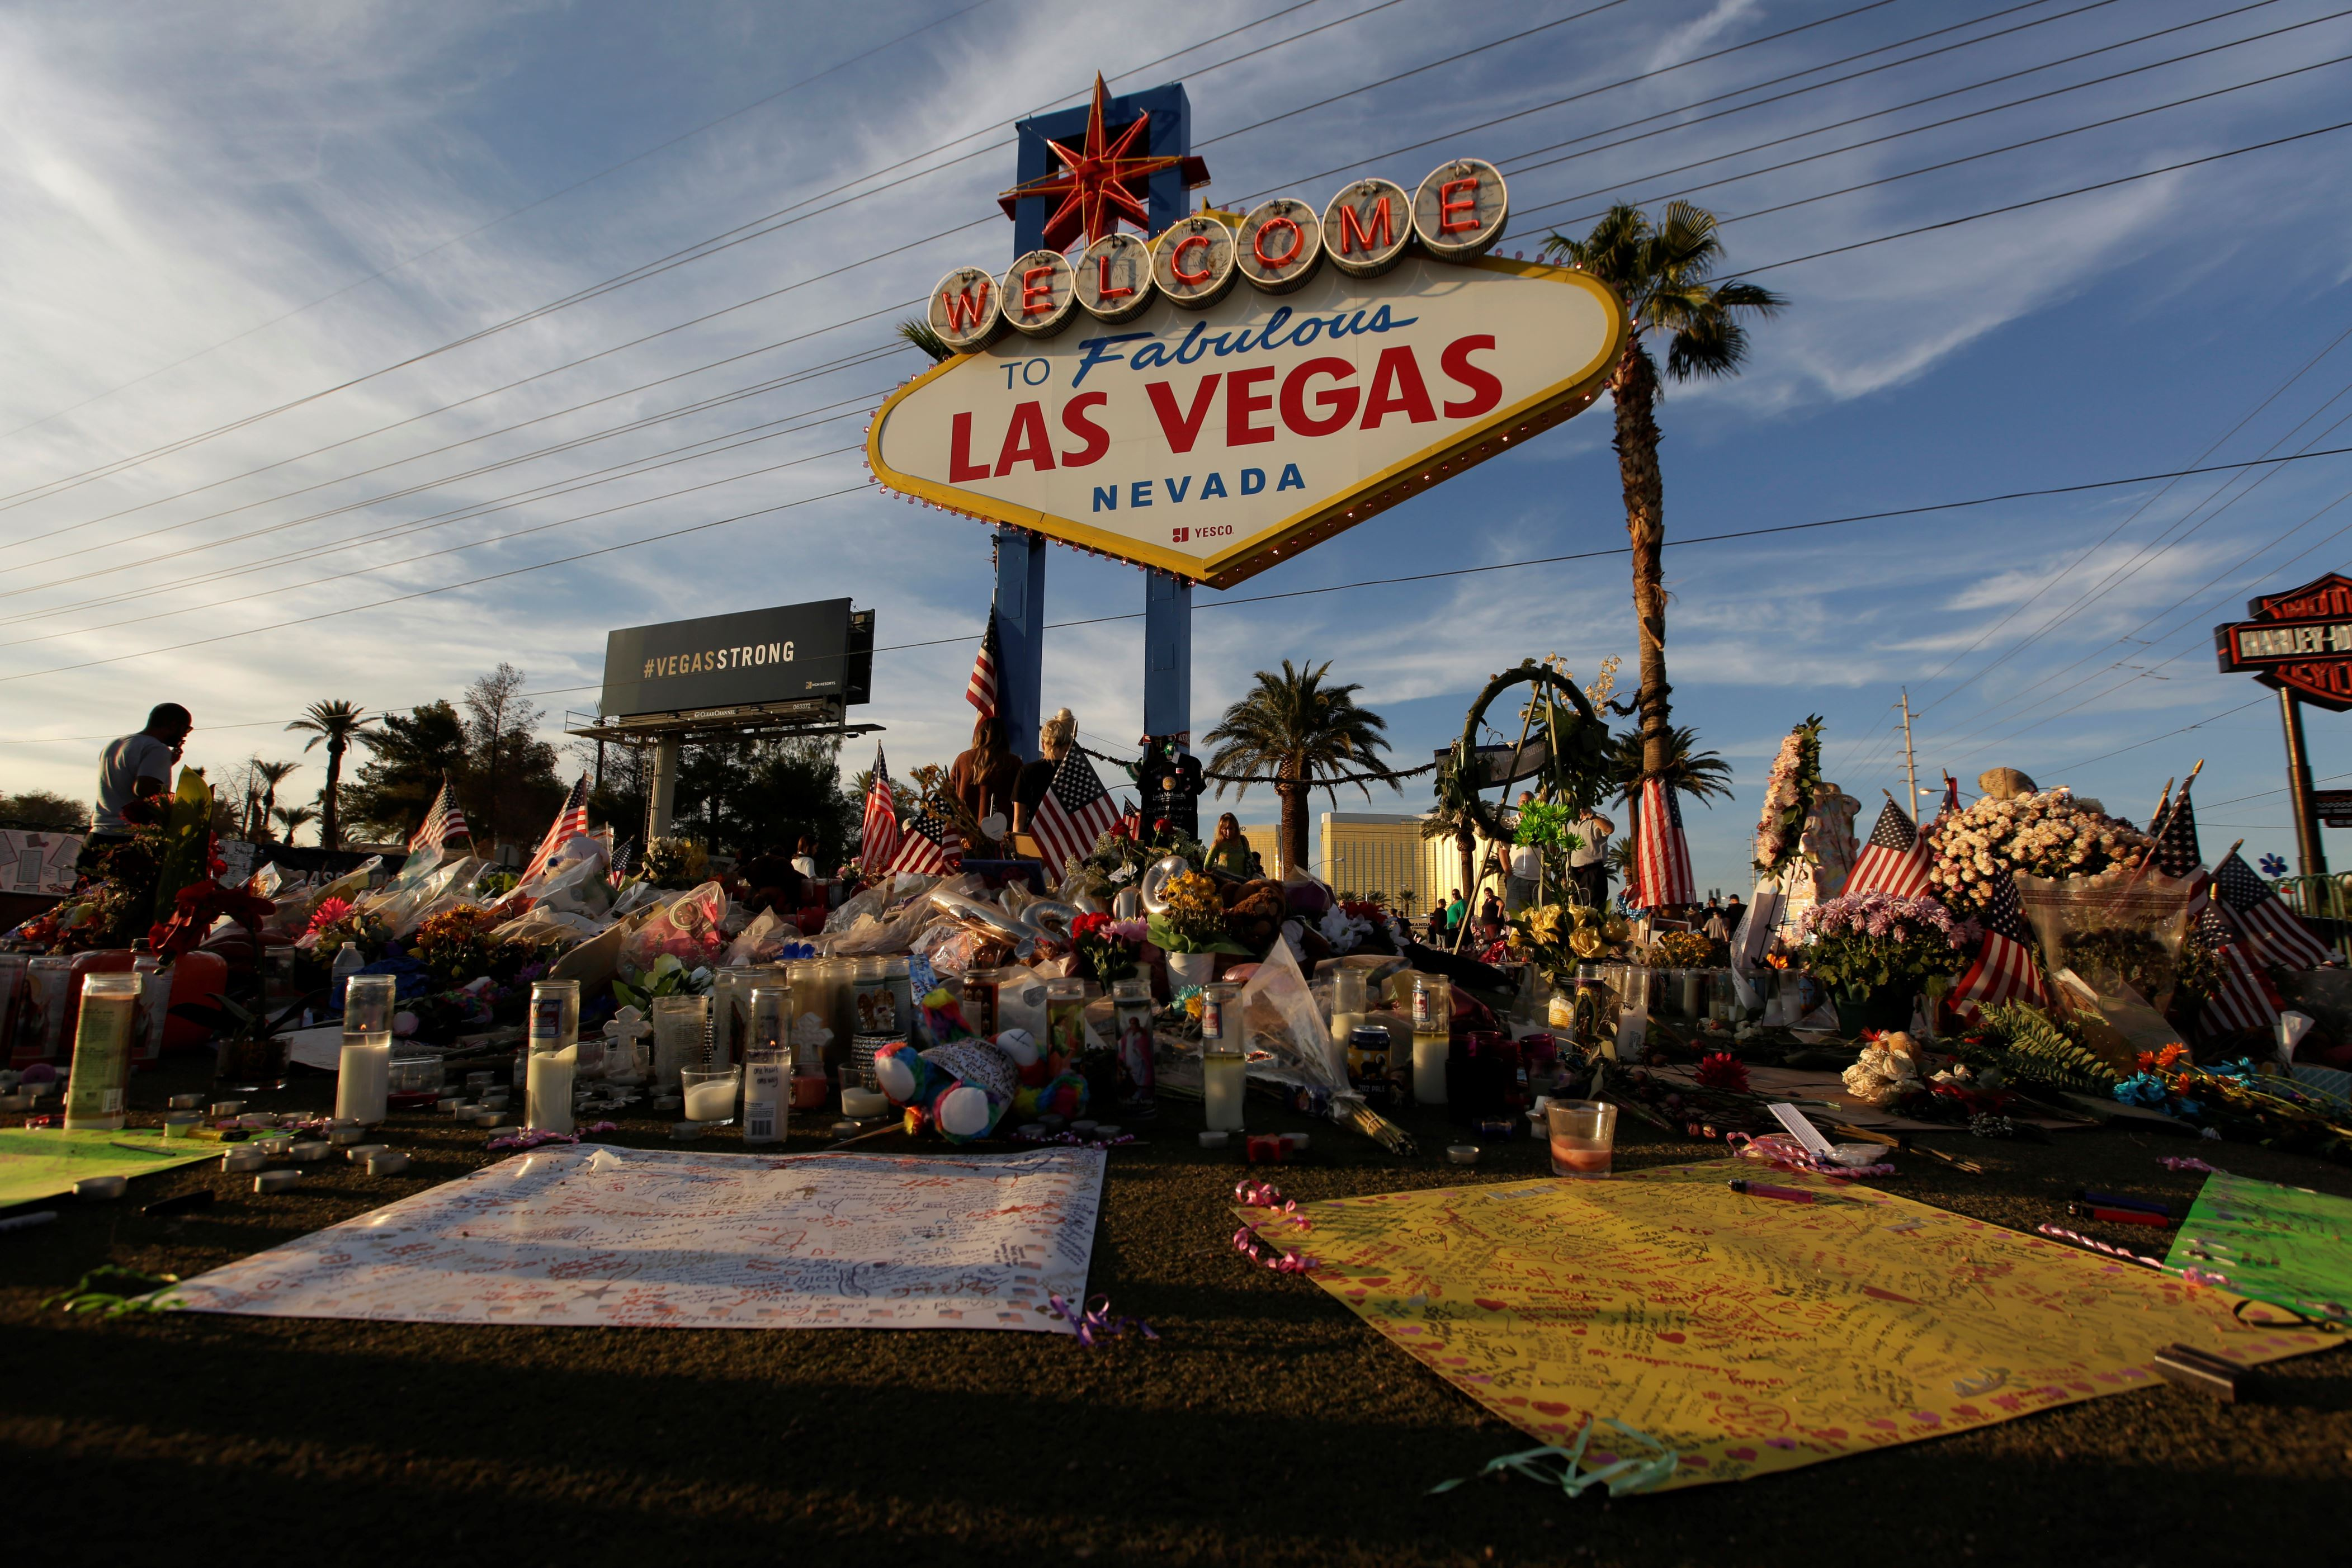 Man who survived Las Vegas shooting killed in hit-and-run